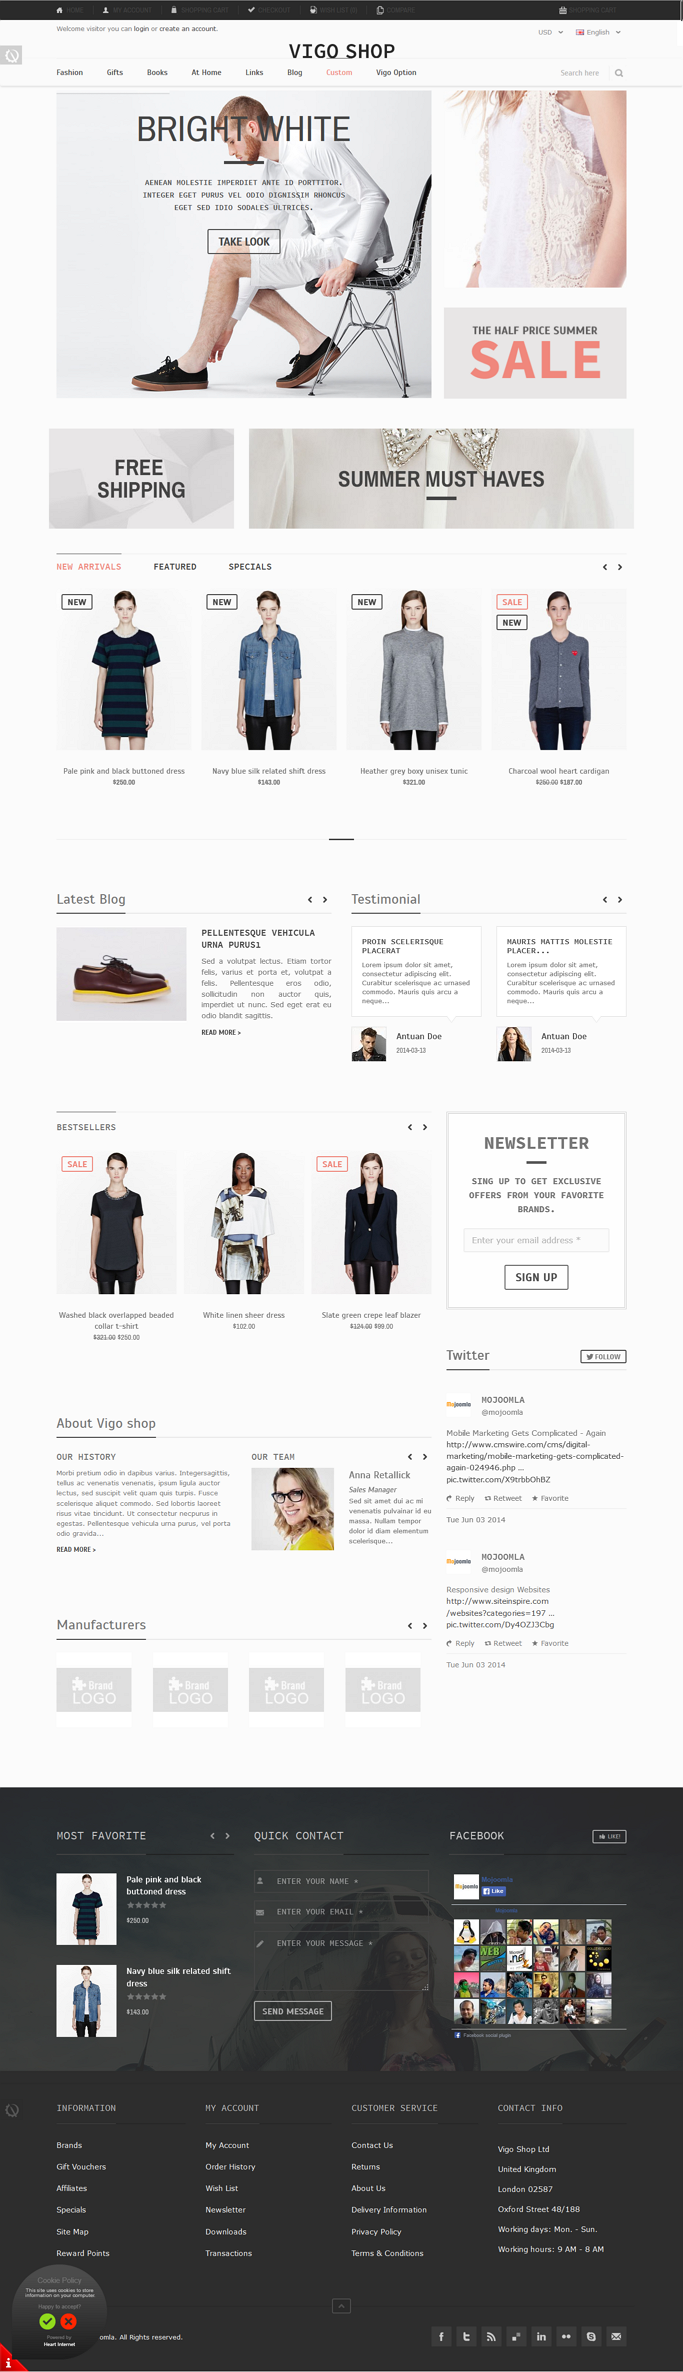 Vigo Shop is a Premium Responsive opencart theme with advanced admin module. It's extremely cust ...